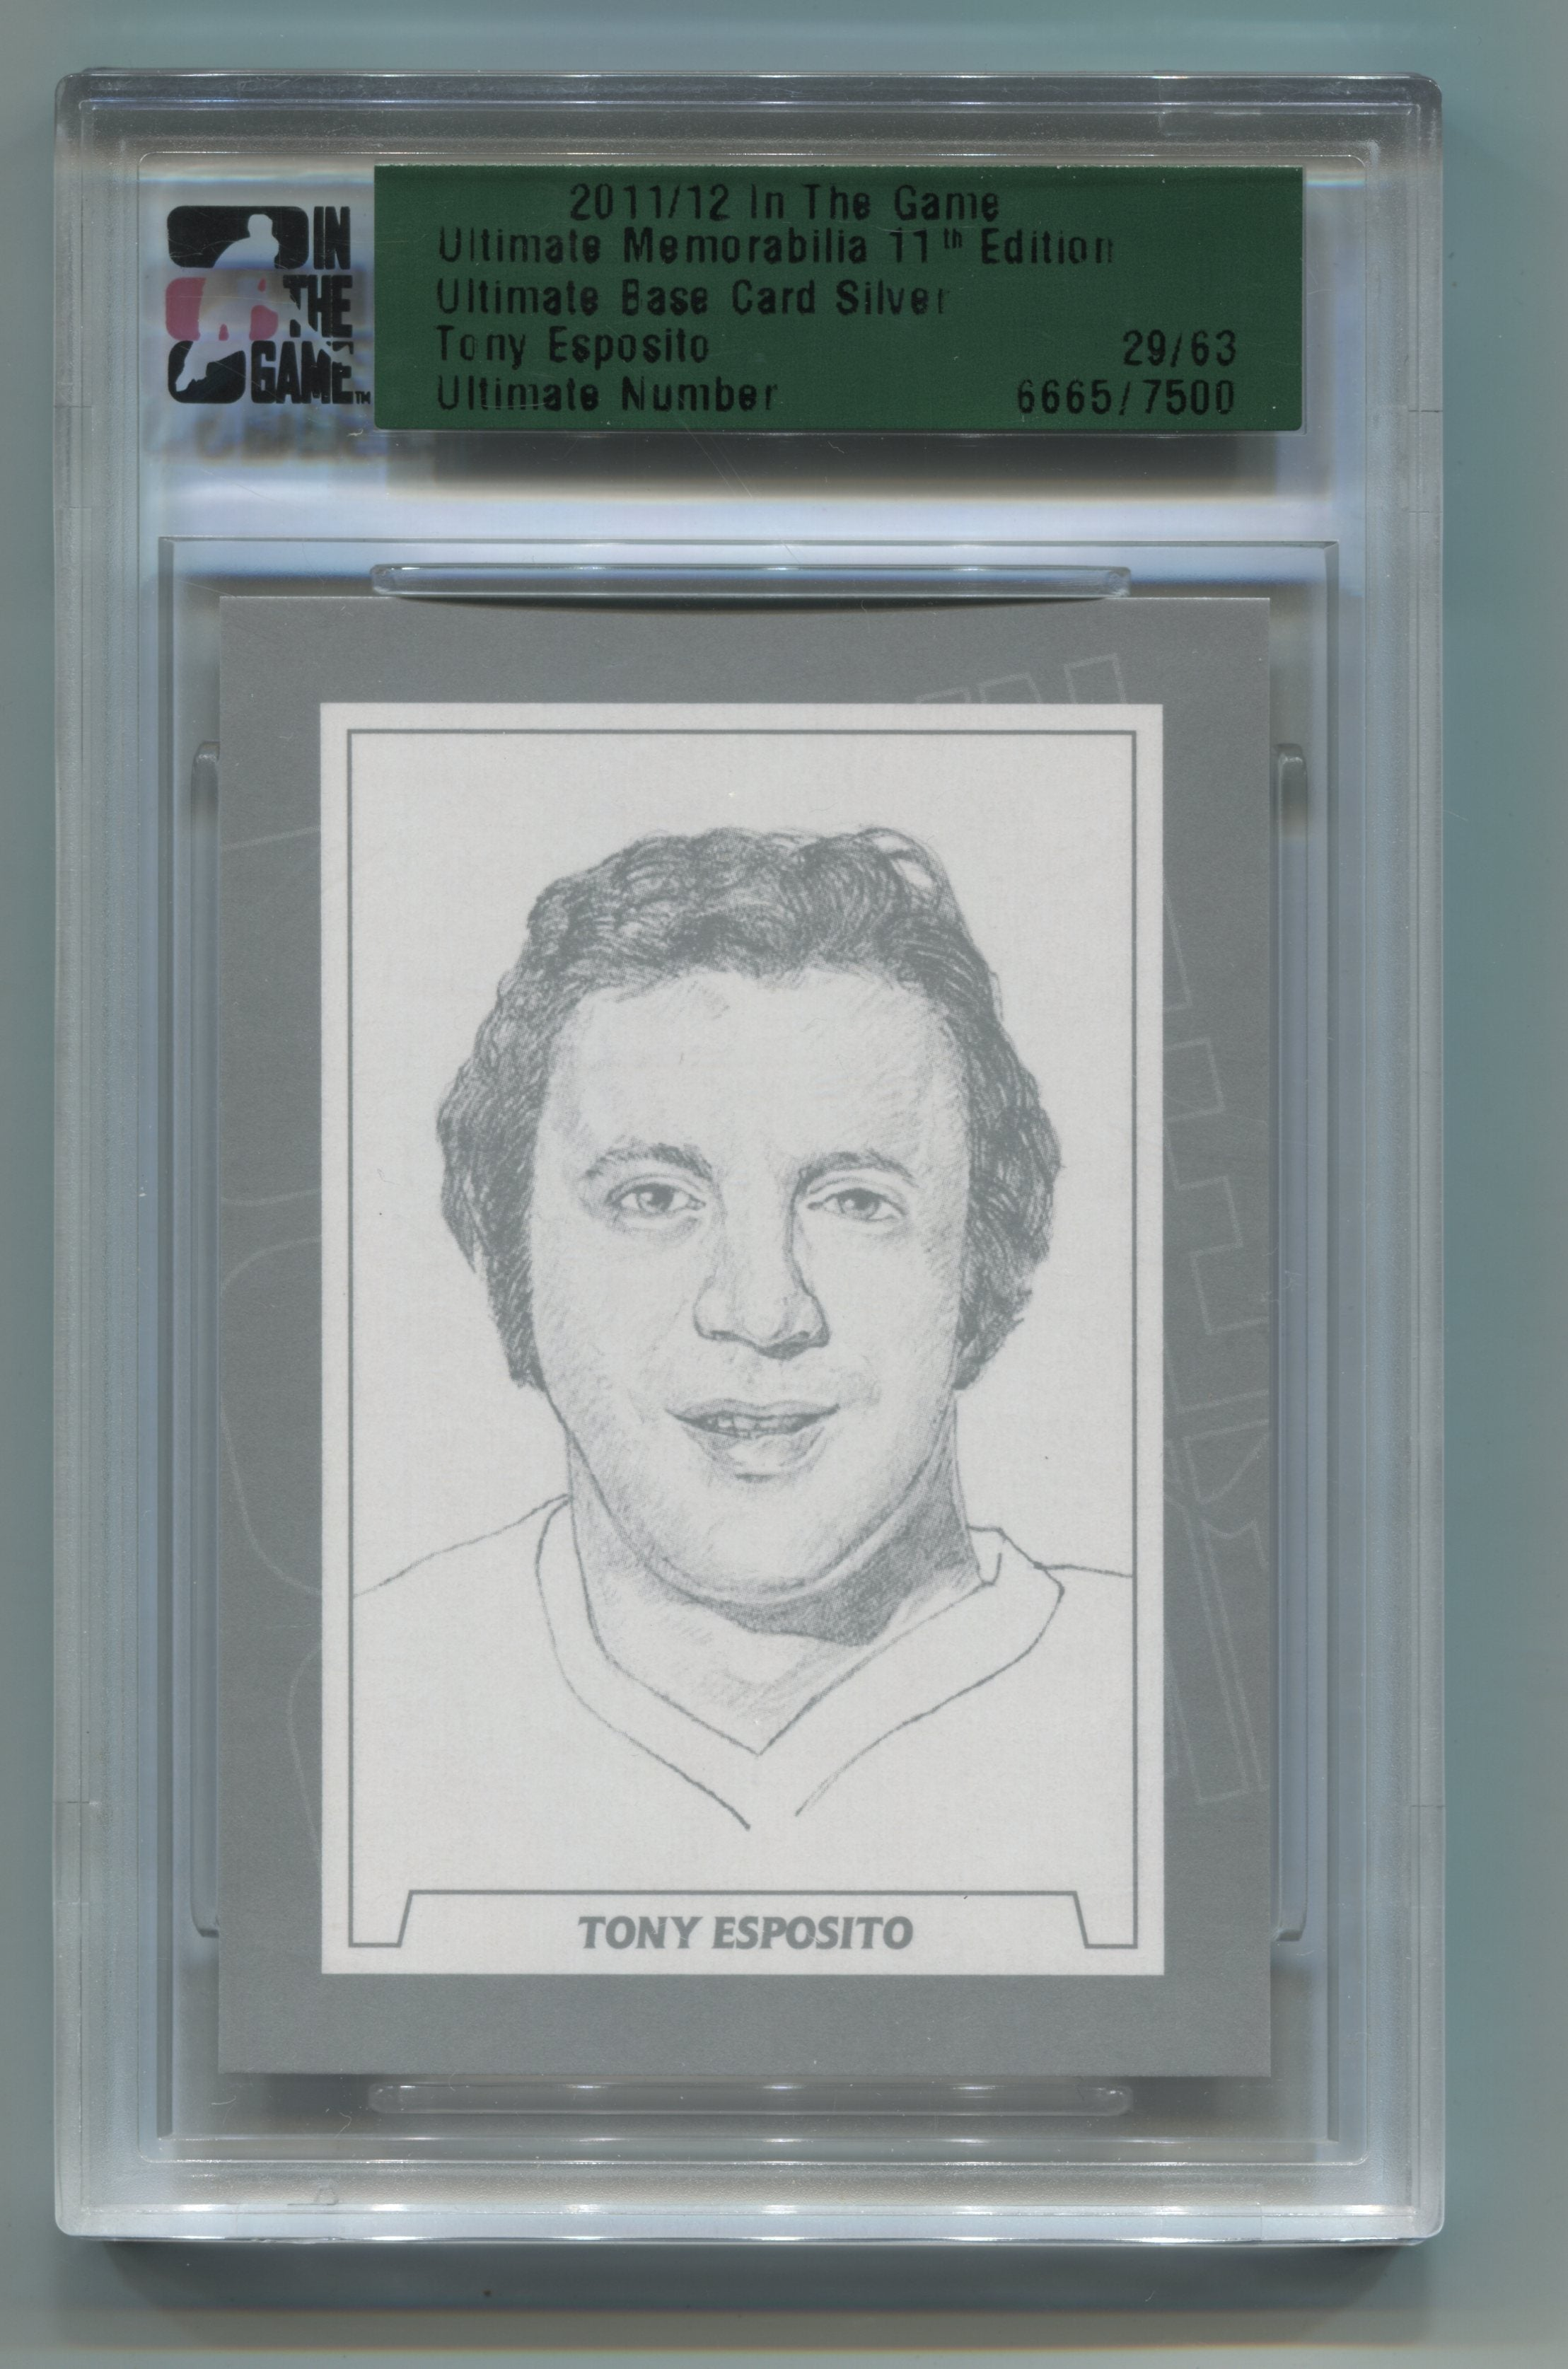 2011-12 ITG Ultimate Memorabilia 11th Edition Ultimate Base Card Silver #16 Tony Esposito  #29/63 | Eastridge Sports Cards